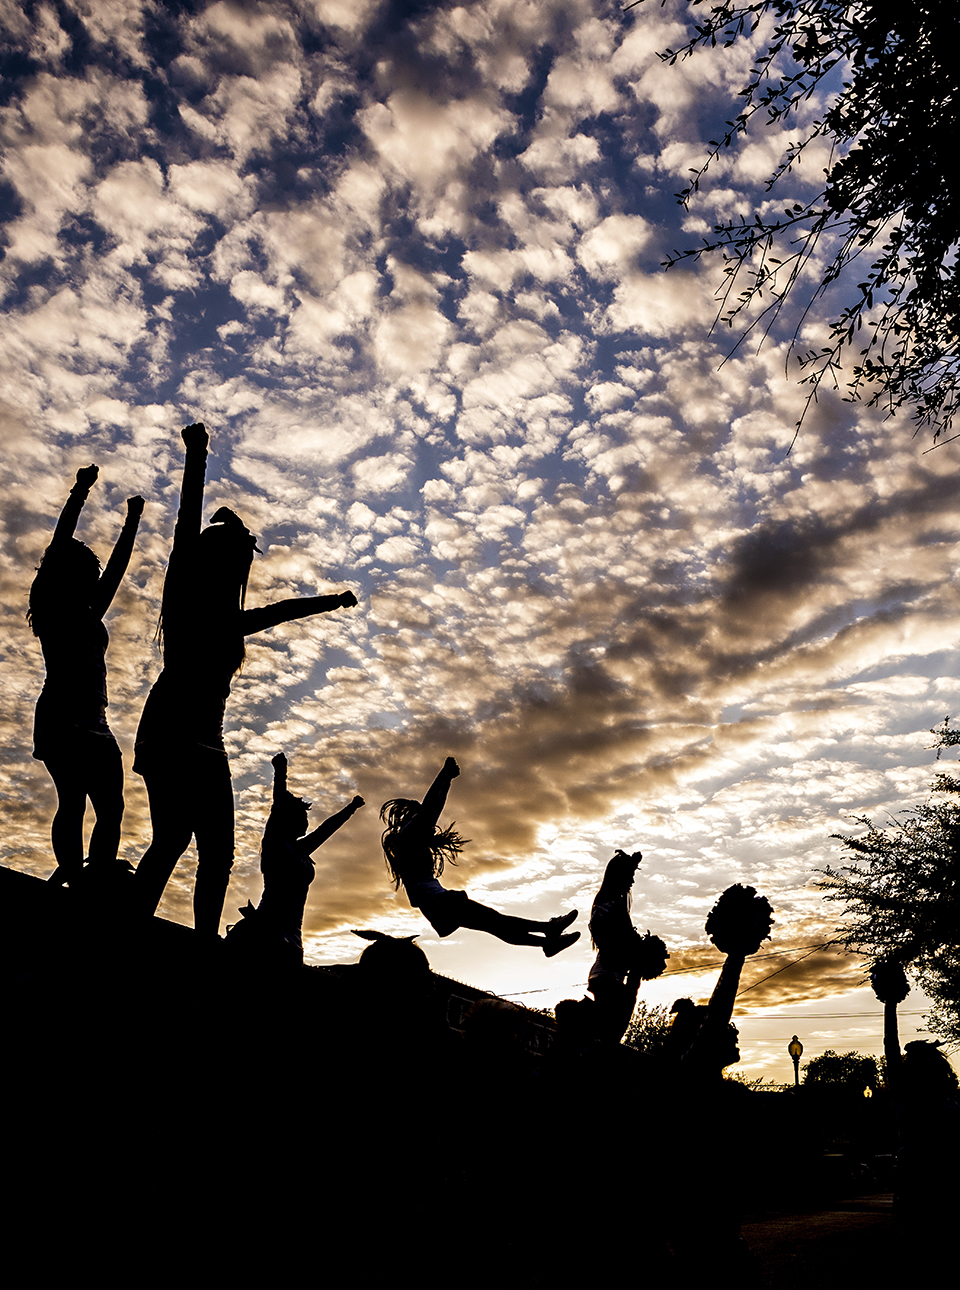 Cheerleaders are silhouetted in the afternoon sky during the annual Adamson vs. Sunset pep rally in the Bishop Arts District in September. Go Oak Cliff began throwing annual pep rallies for the intra-neighborhood football rivalry in 2012. (Photo by Danny Fulgencio)